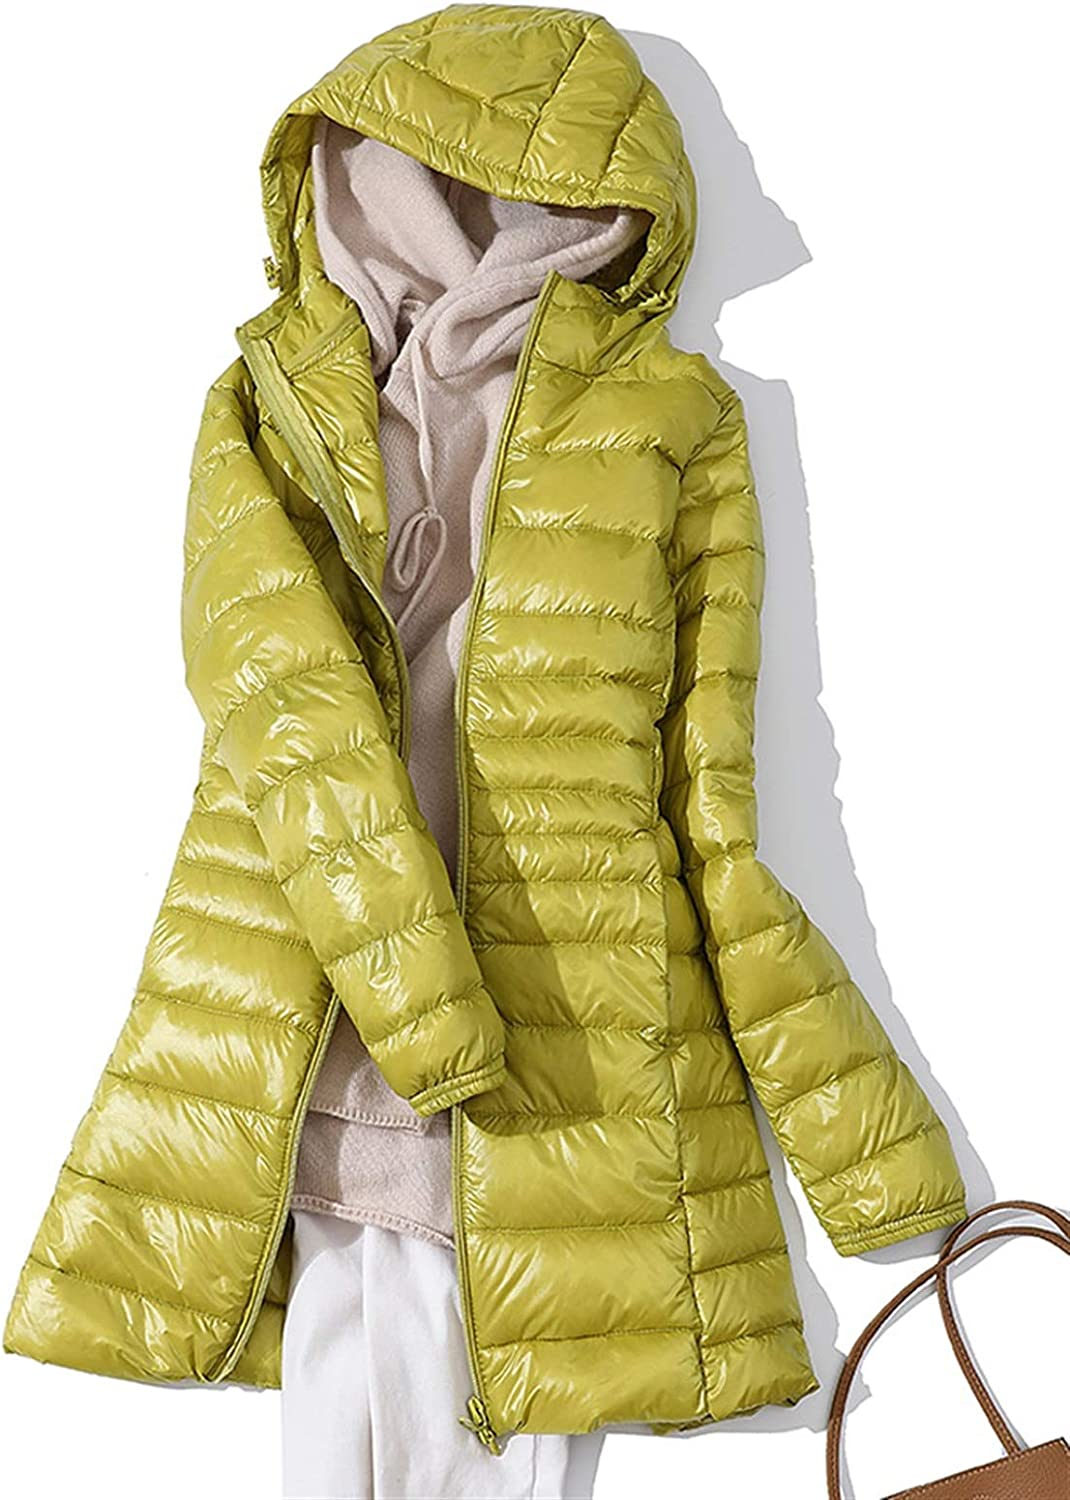 Thickened Down Jacket Leather Plaid Coat Very San Jose Mall popular Winter 7XL Woman